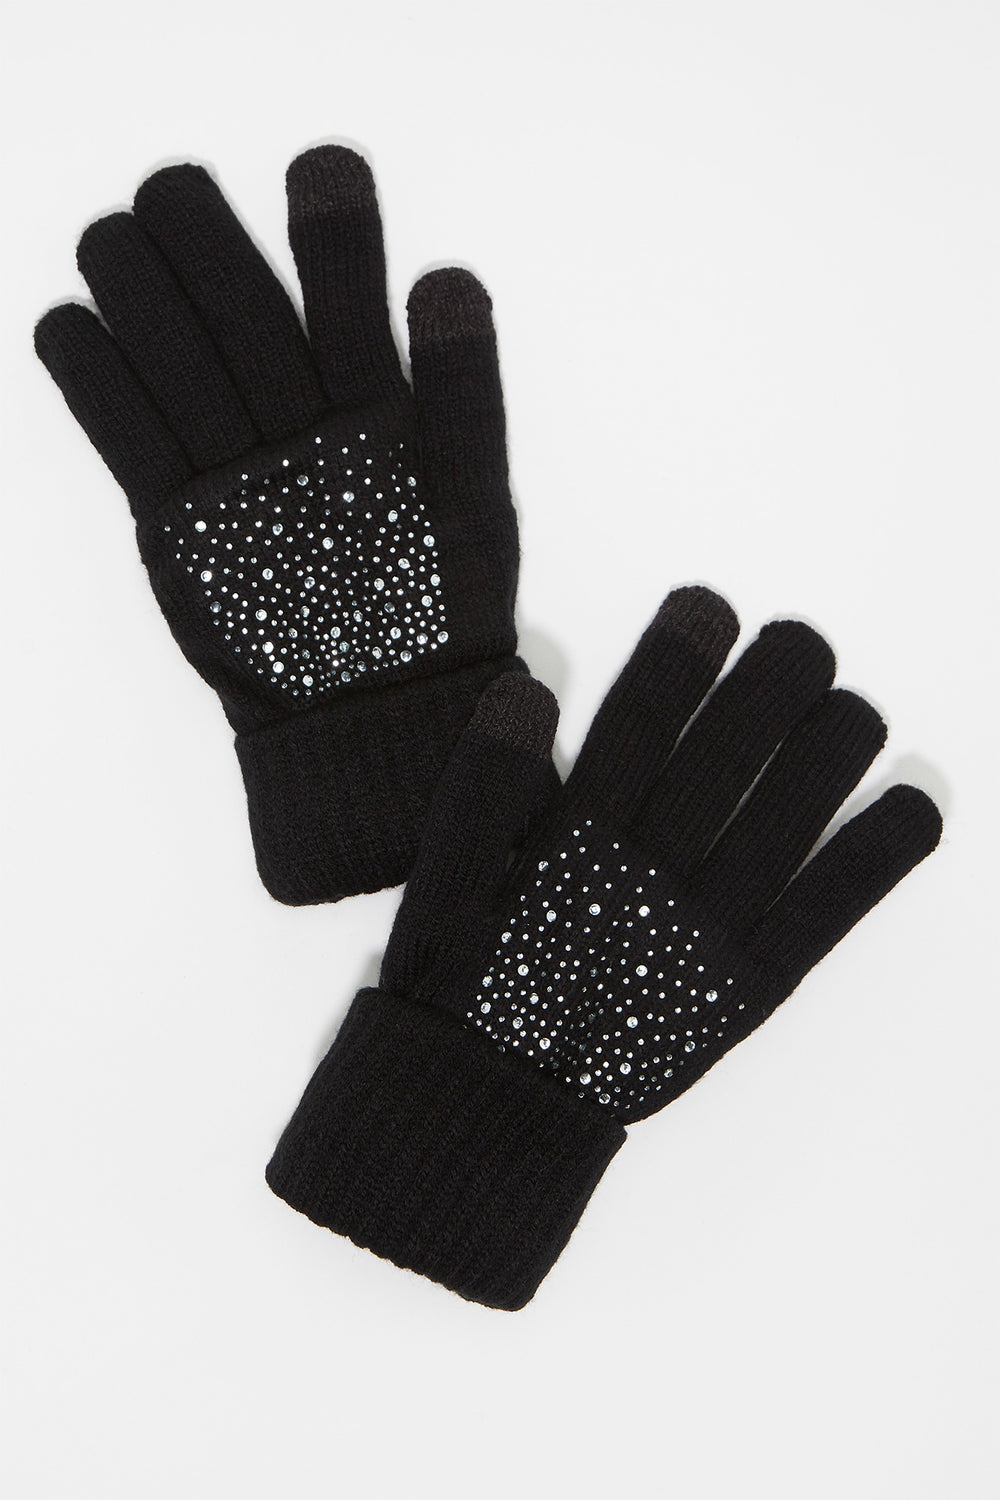 Knit Rhinestone Touchscreen Glove Black